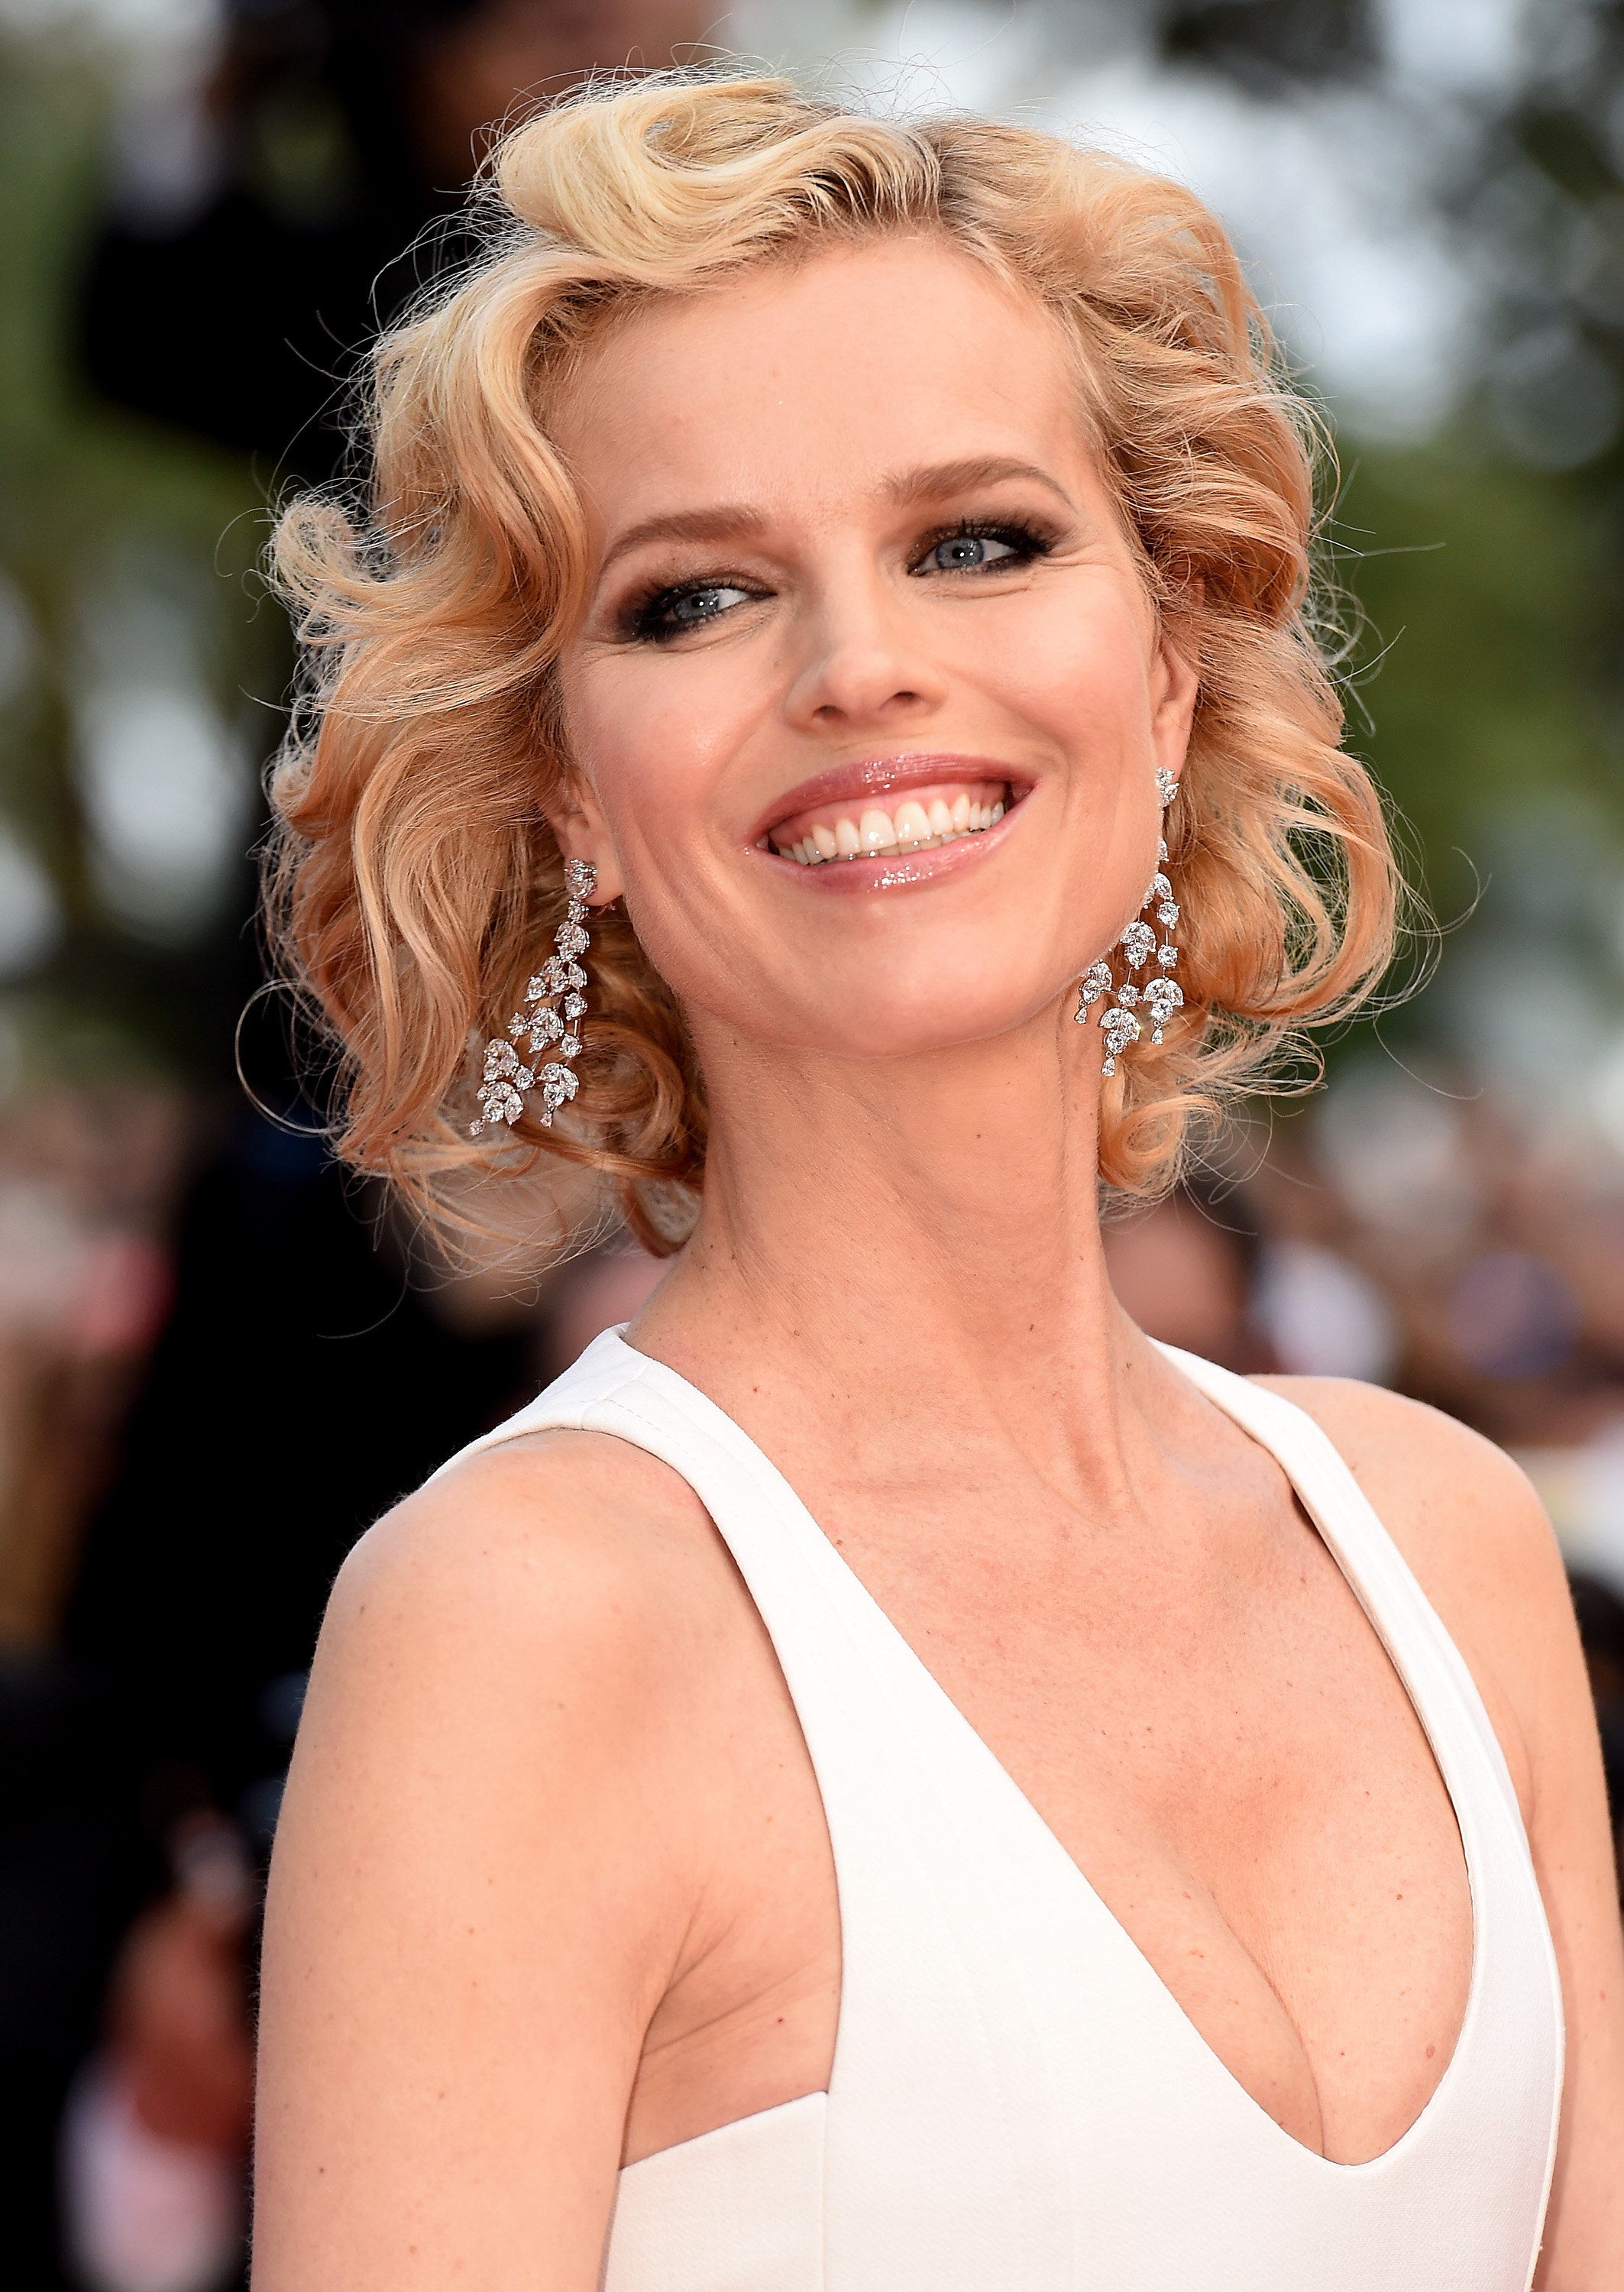 """CANNES, FRANCE - MAY 18: Model Eva Herzigova attends """"The Unknown Girl (La Fille Inconnue)"""" Premiere during the 69th annual Cannes Film Festival at the Palais des Festivals on May 18, 2016 in Cannes, France. (Photo by Stephane Cardinale - Corbis/Corbis via Getty Images)"""